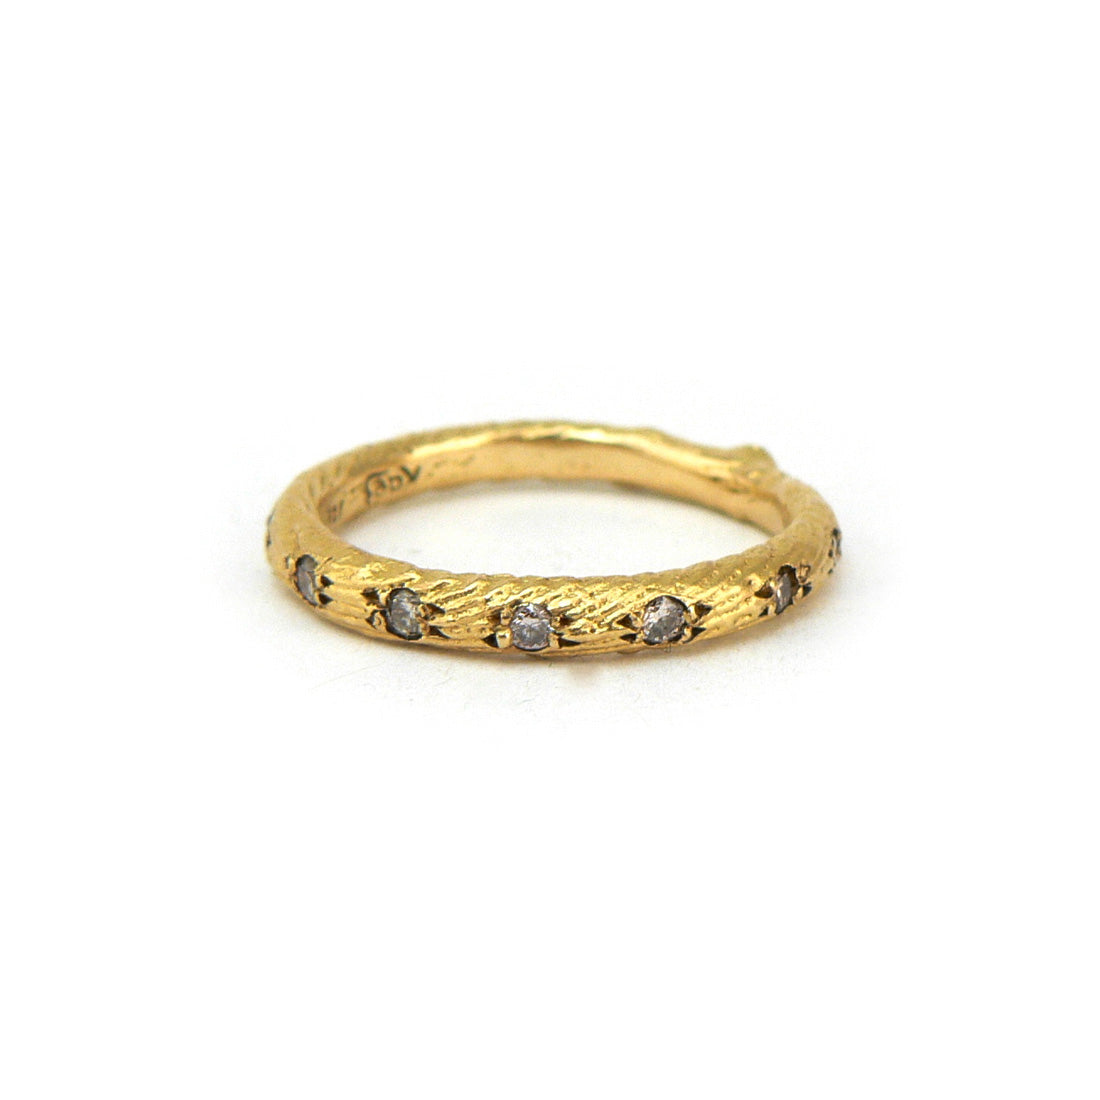 Organic finish textured women's wedding ring 18ct gold with diamonds, Custom bespoke handmade.